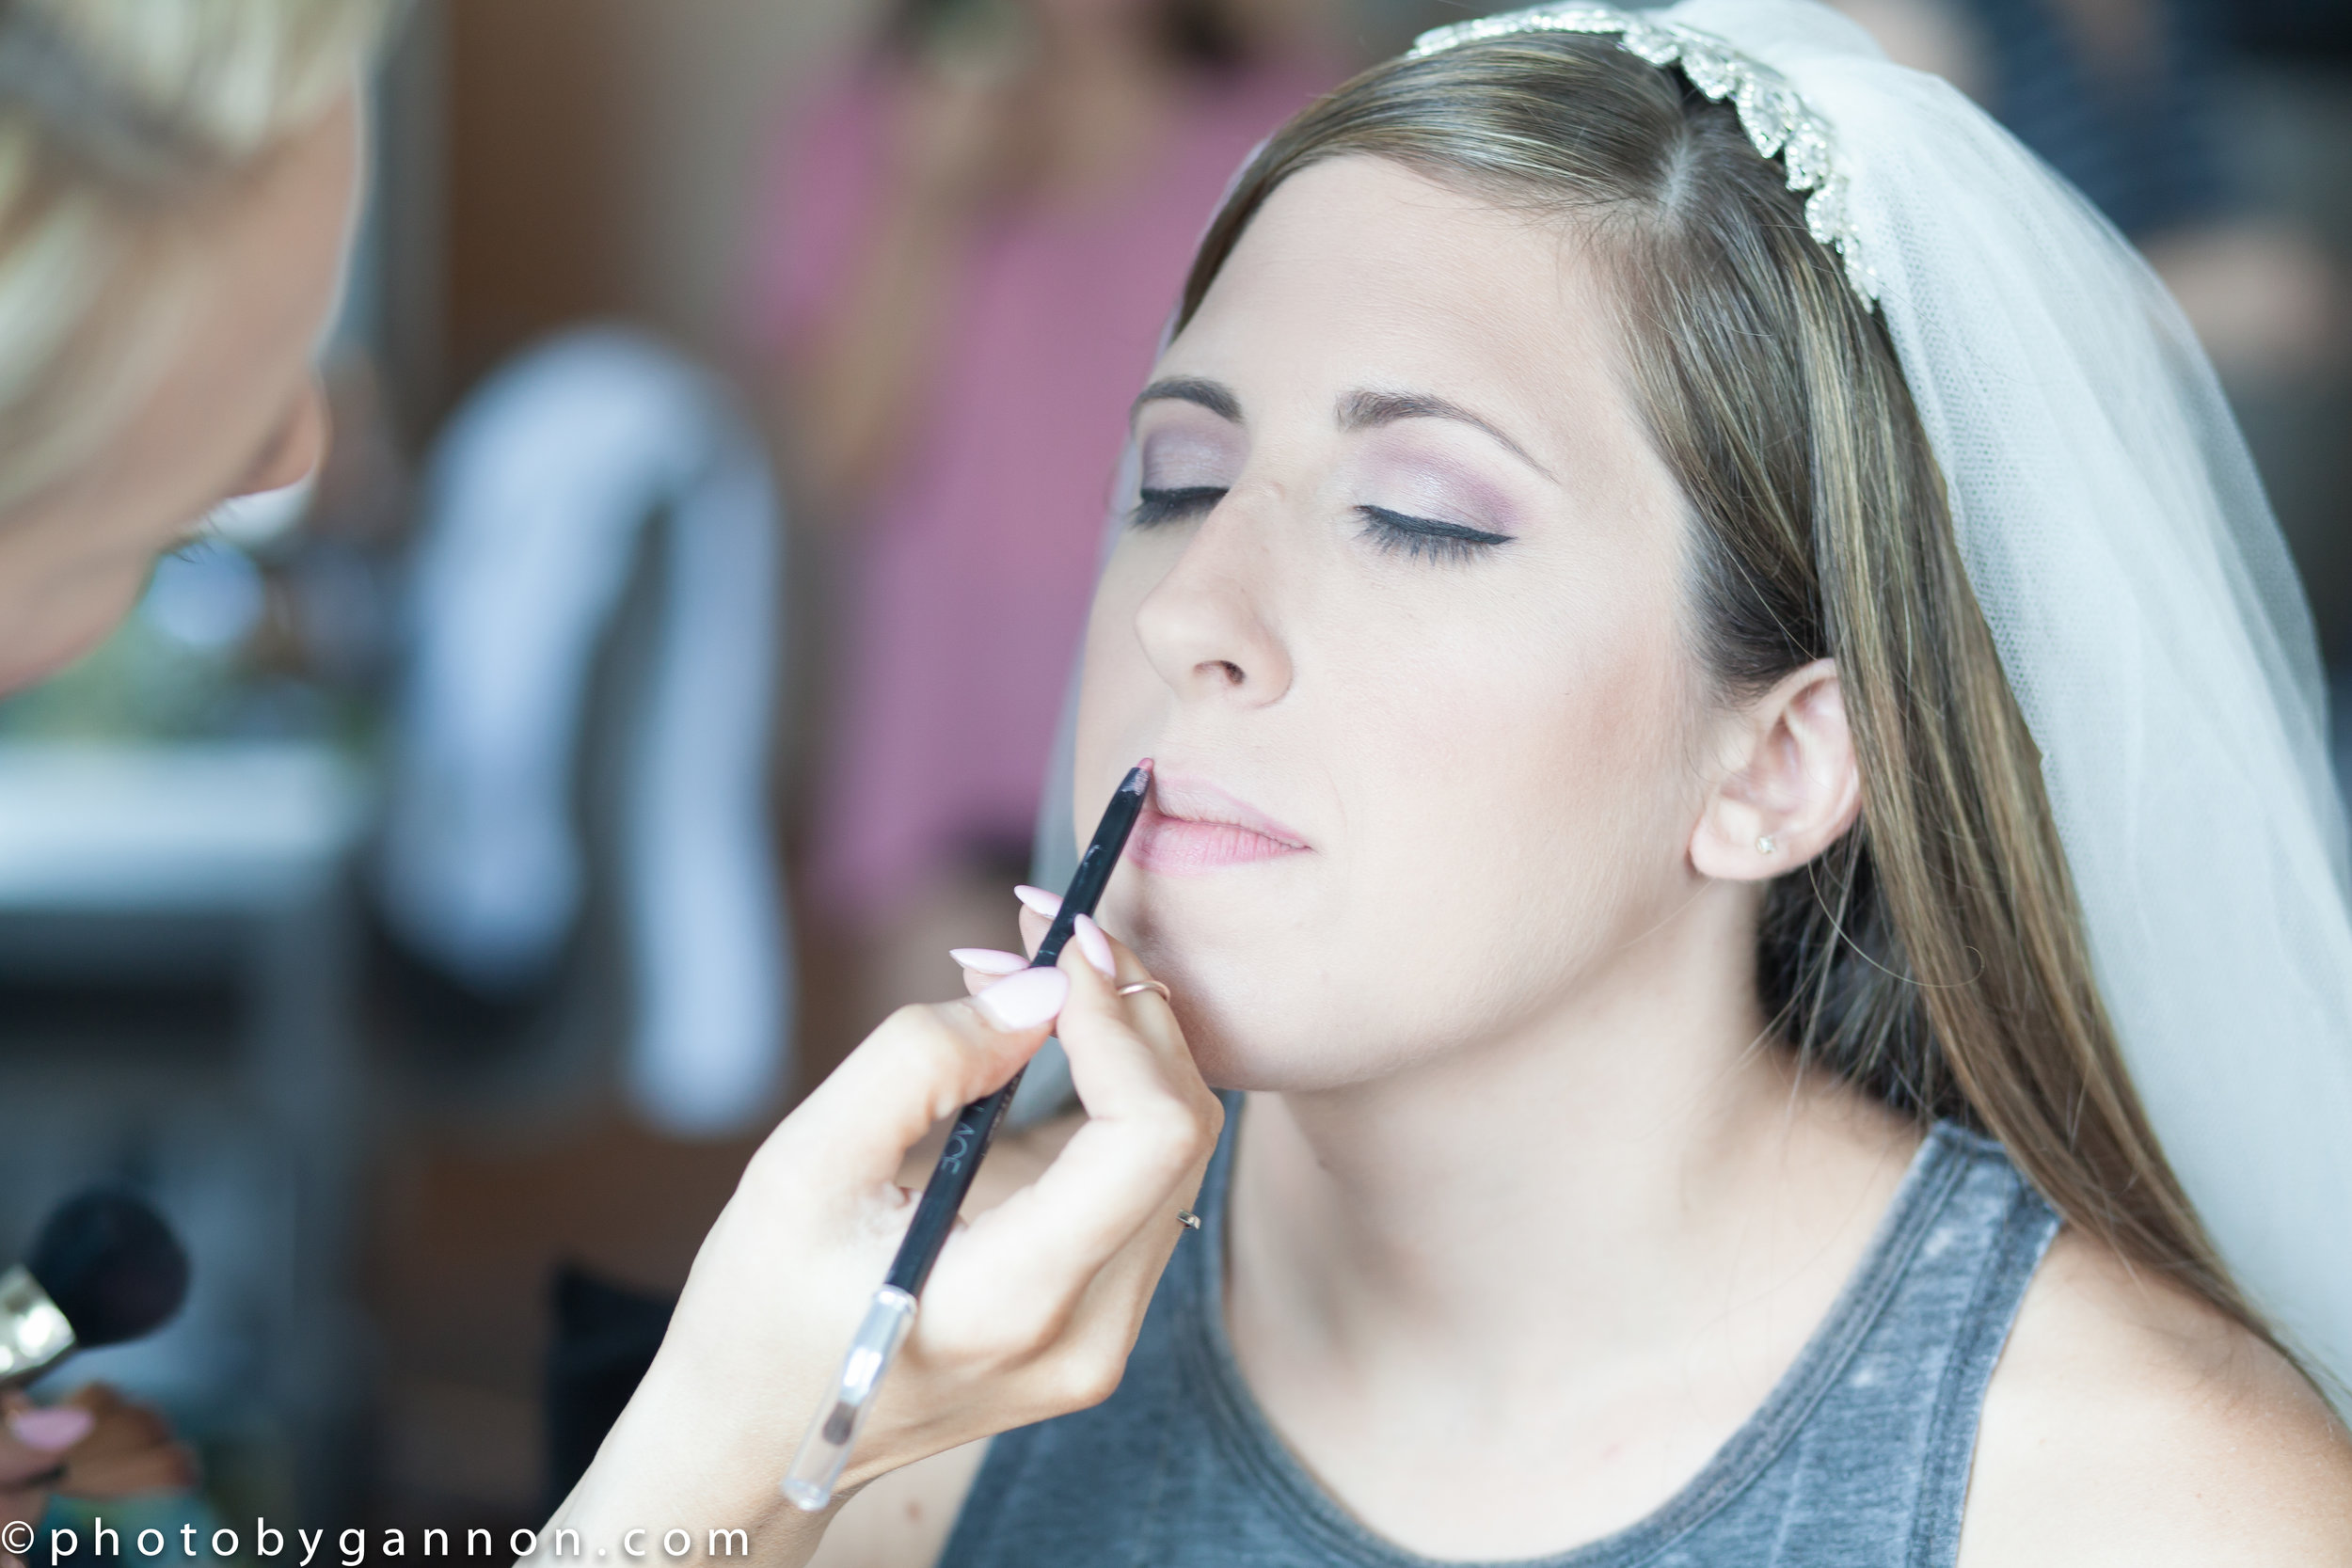 getting ready - makeup application